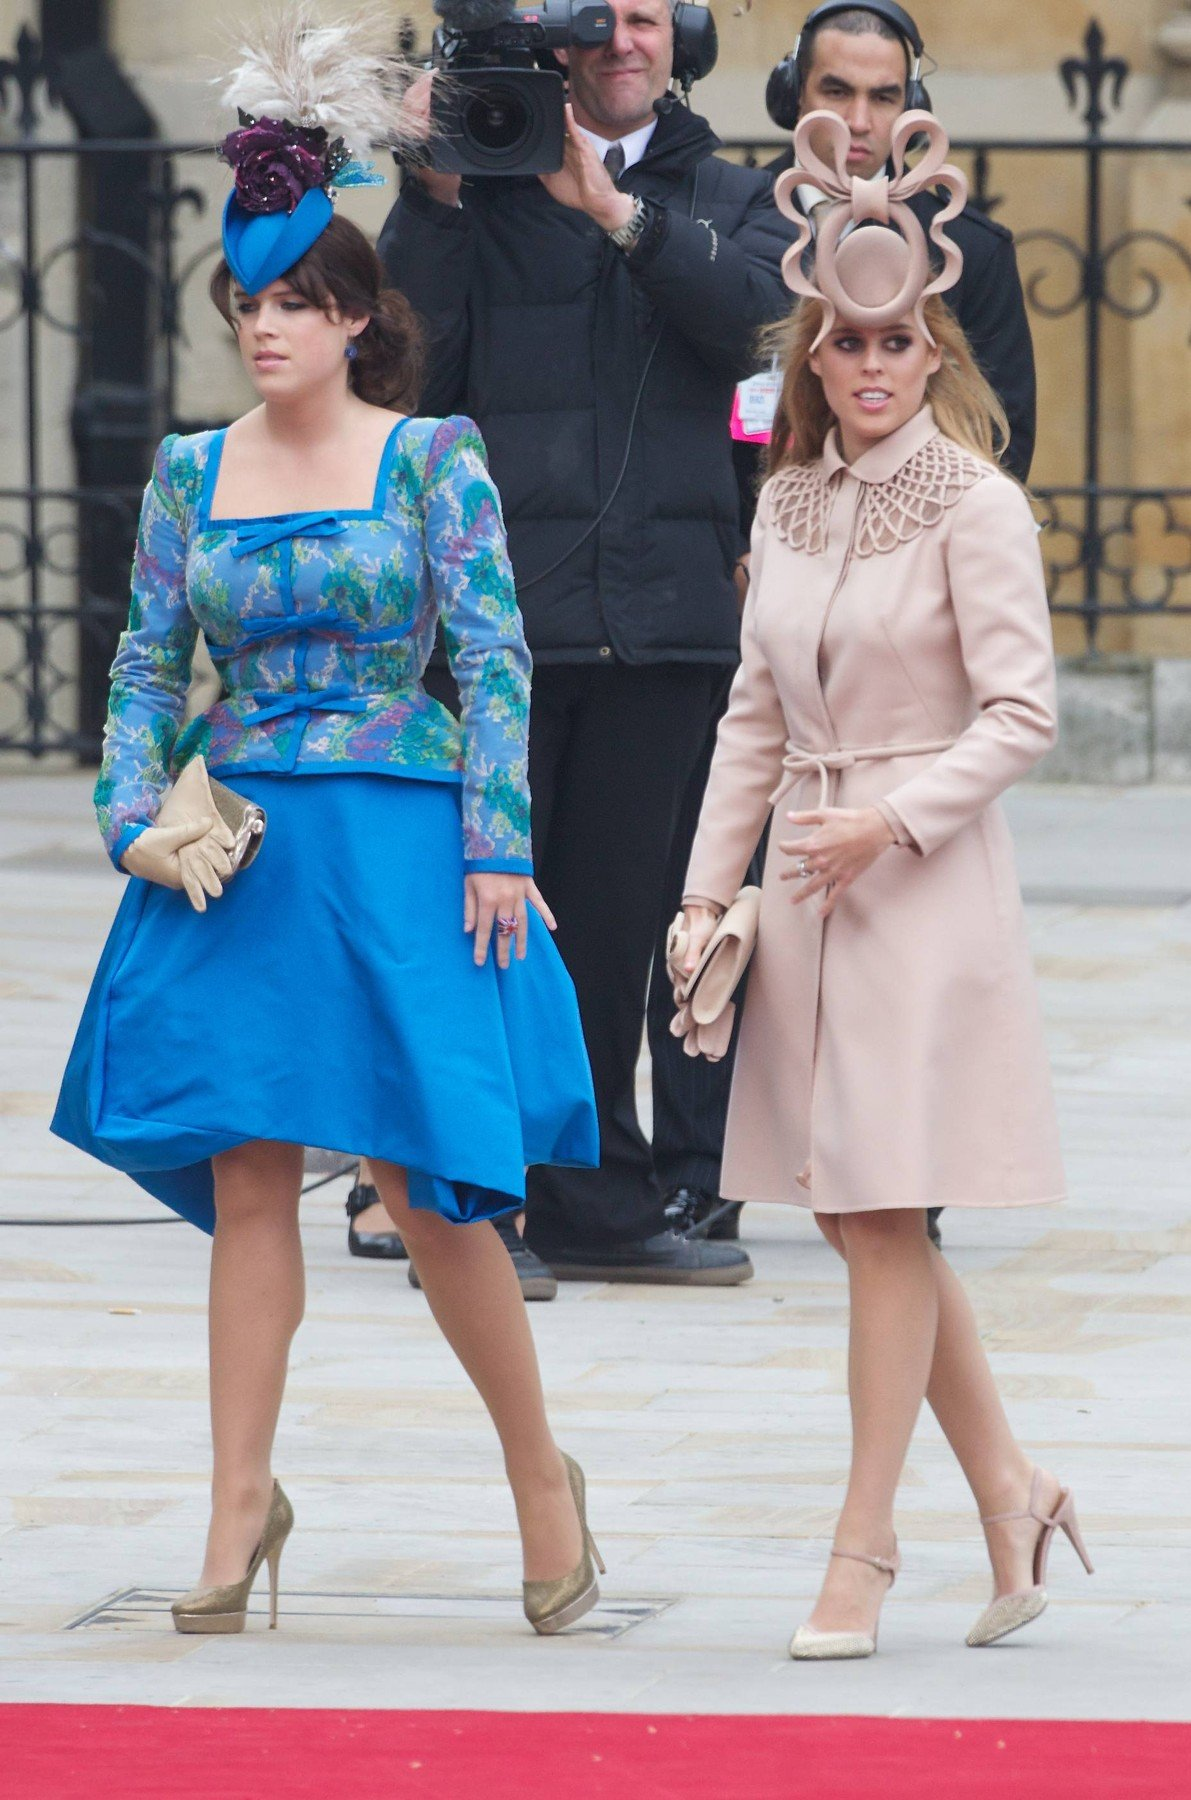 Princess Beatrice and Princess Eugenie The wedding of Prince William and Catherine Middleton, London, Britain - 29 Apr 2011, Image: 222081562, License: Rights-managed, Restrictions: , Model Release: no, Credit line: Profimedia, TEMP Rex Features